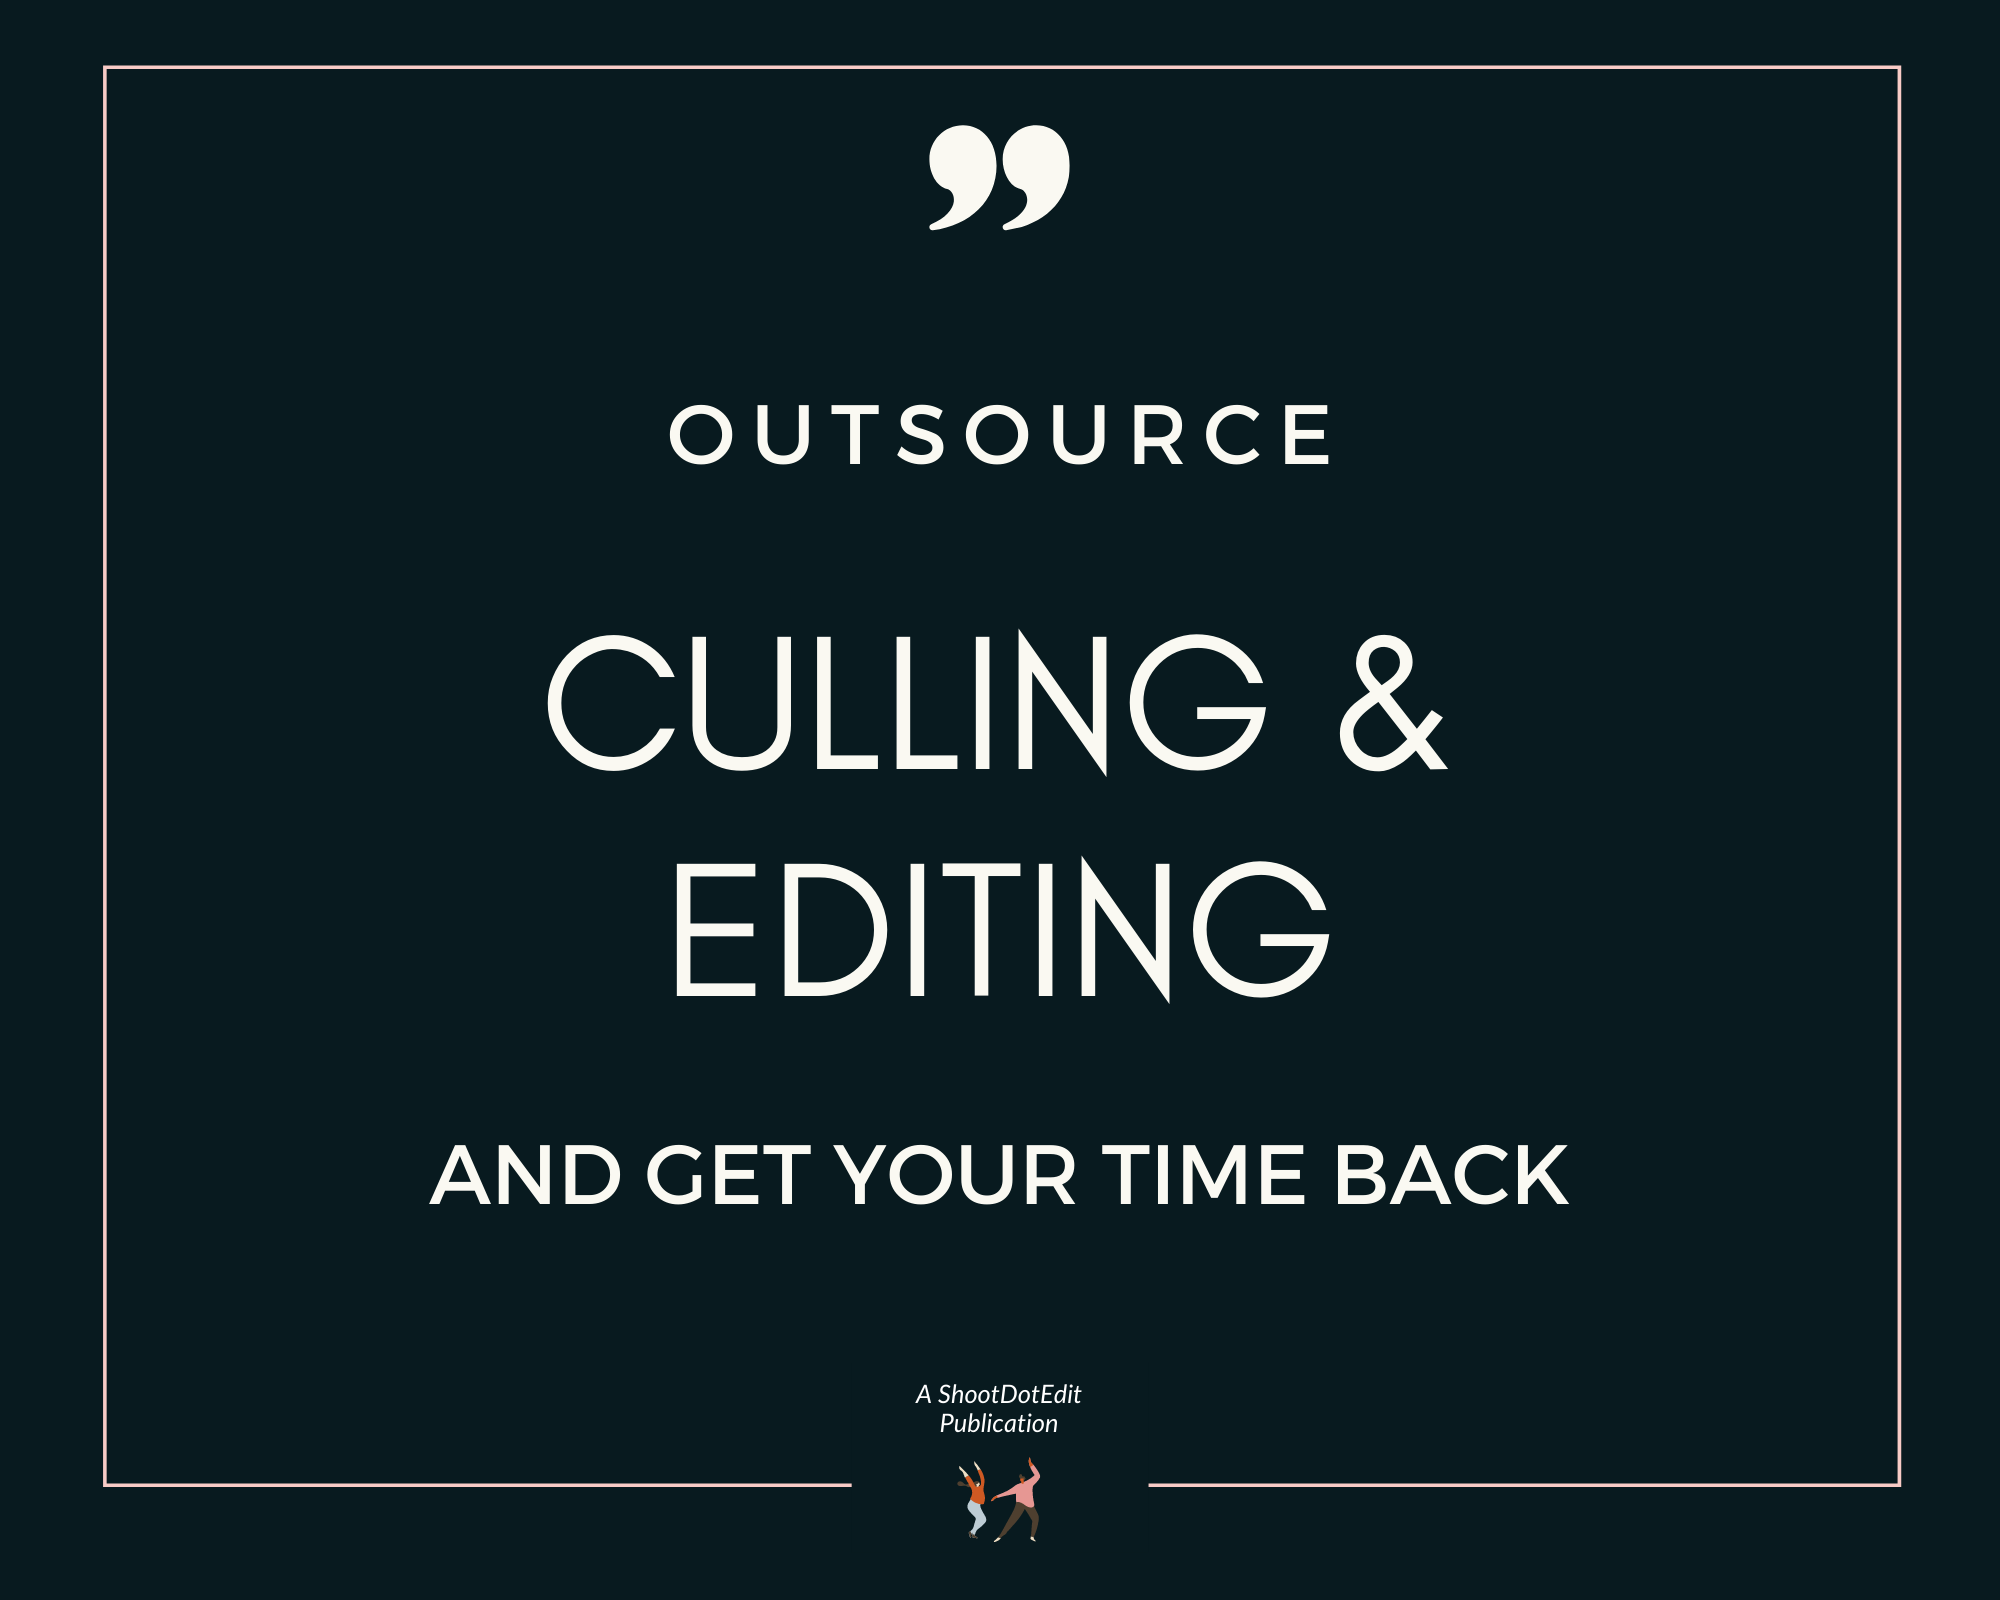 Infographic stating outsource culling and editing and get your time back